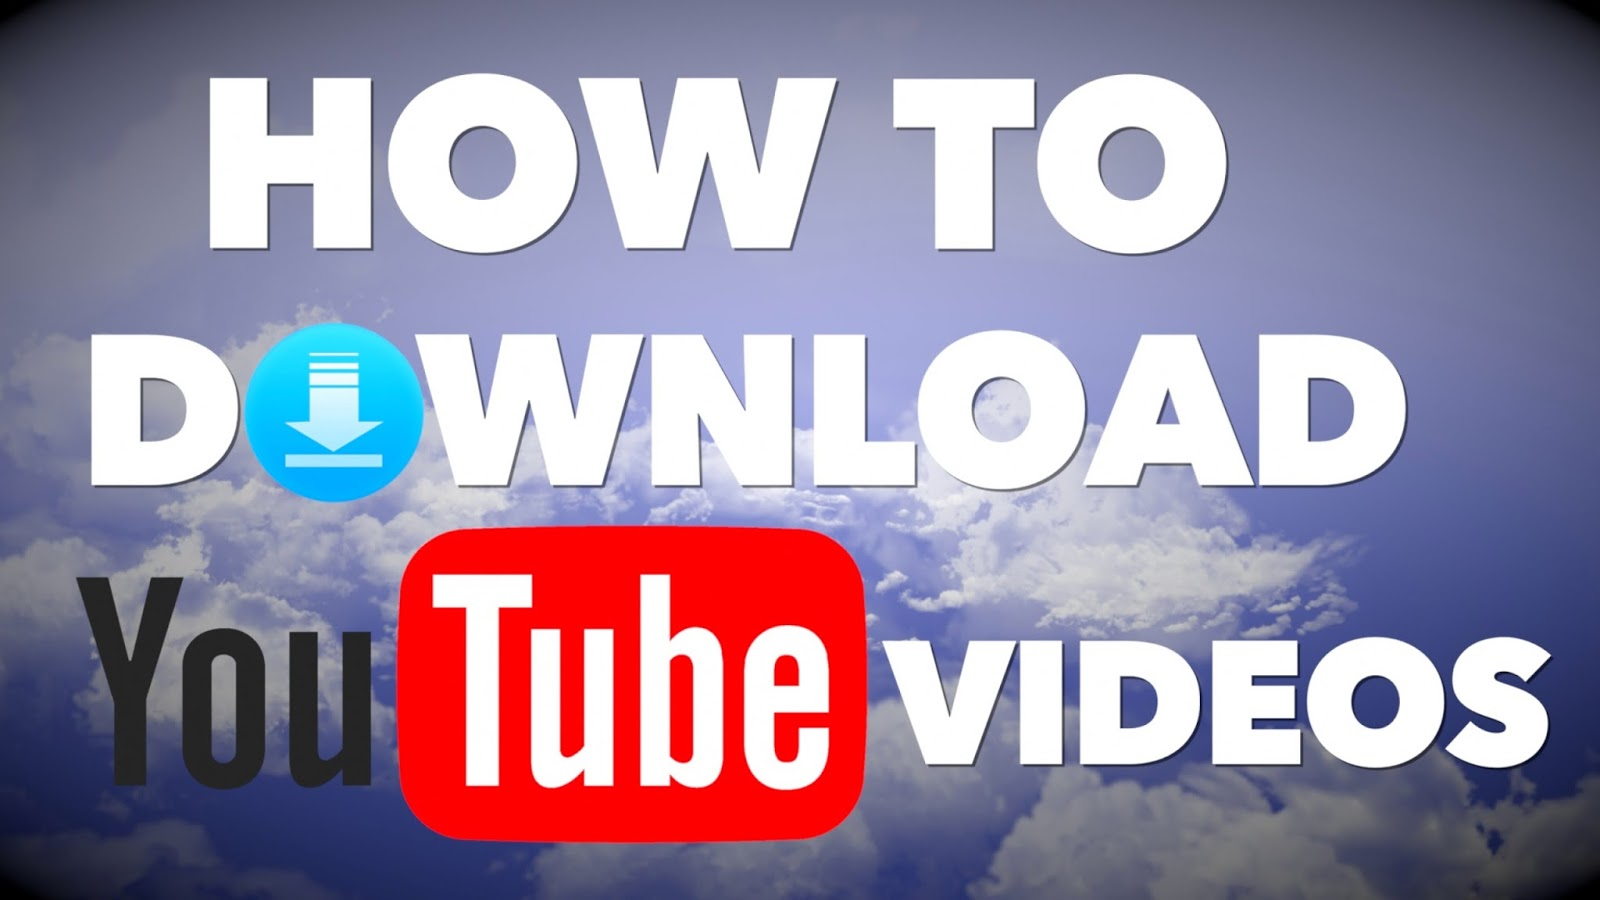 How to download youtube videos in pcandroidios devices 2016 hello guys today i will be showing you how to download videos from youtube many people want to know how to save some music or videos in their ccuart Images